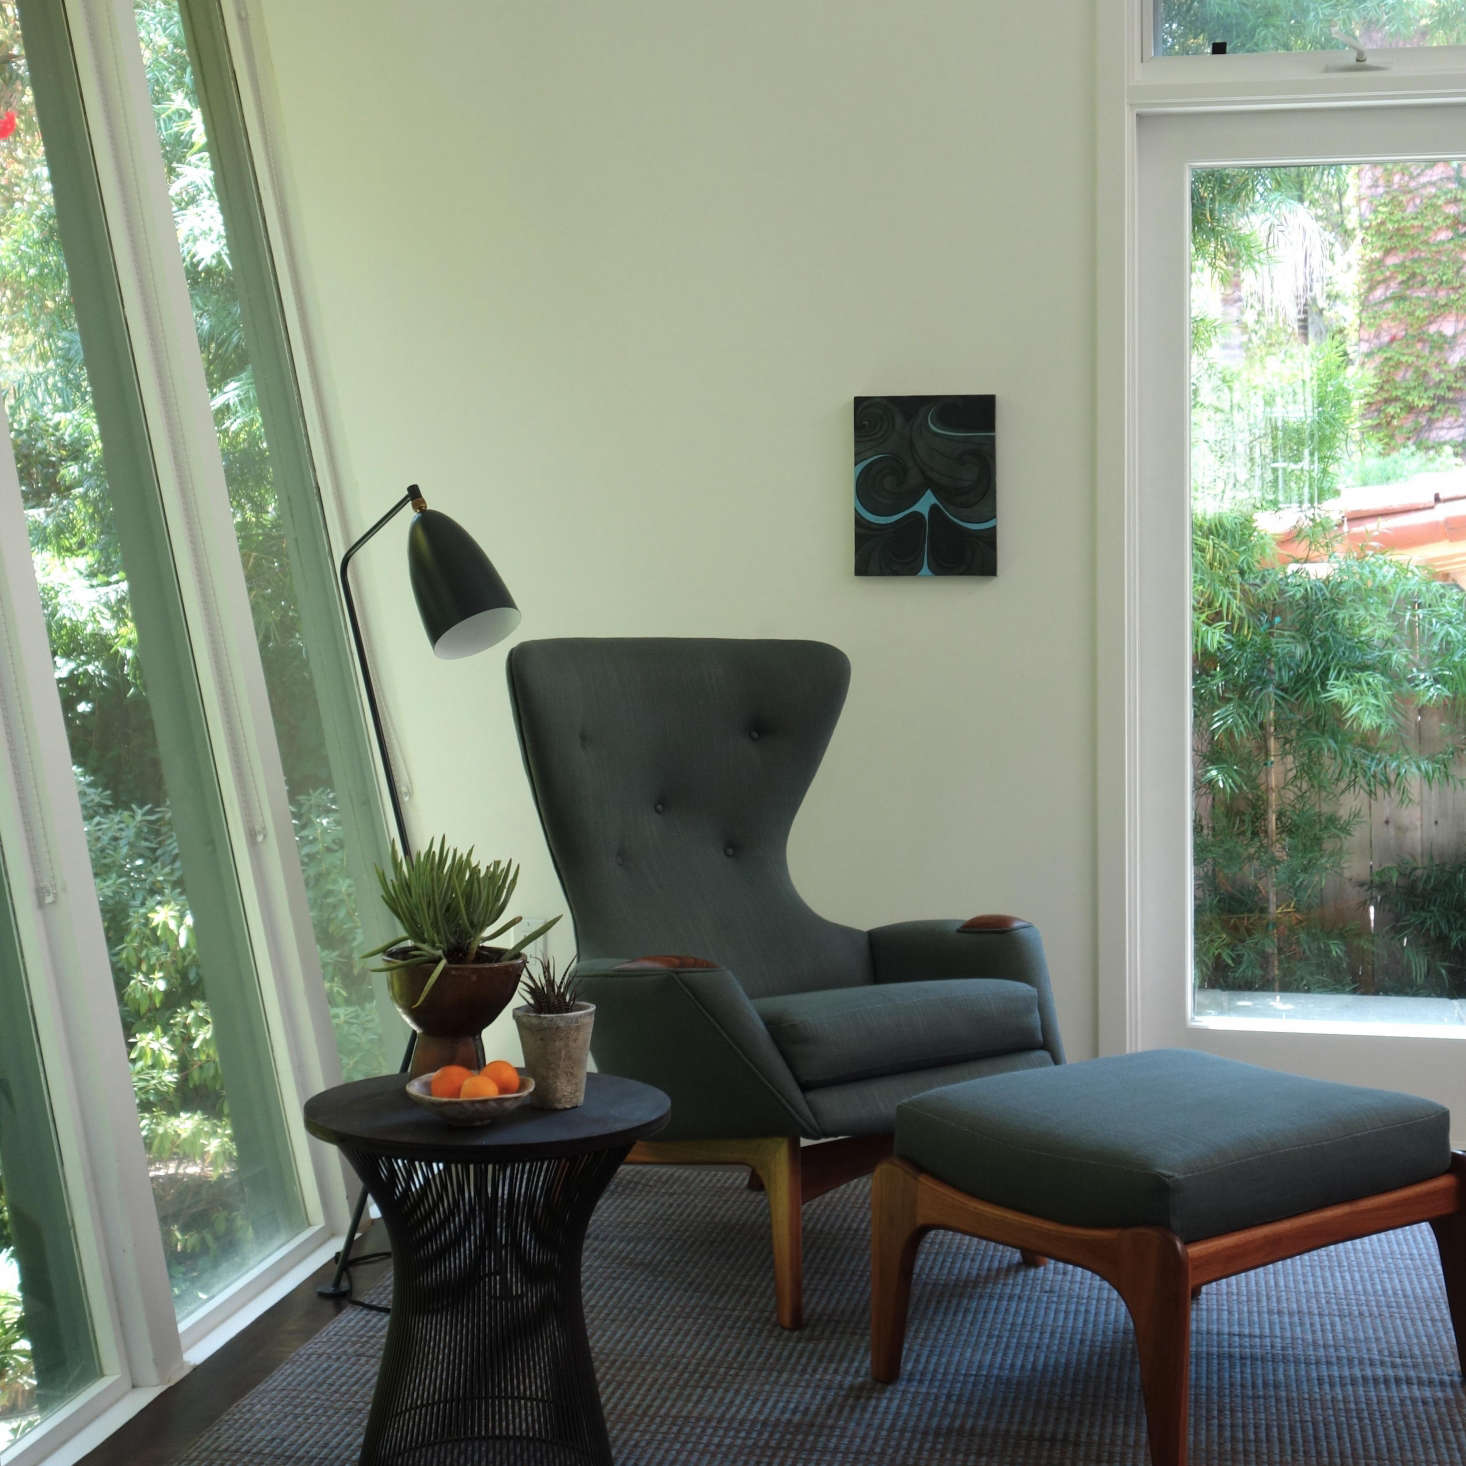 Living Room, Santa Monica: Placing this sculptural Adrian Pearsall chair and ottoman in the corner helps draw attention to the distinctive angled windows facing the front of this 60s home. An Elizabeth Eakins Tatami rug creates a subtle pattern on the floor. Photo: Laura Clayton Baker